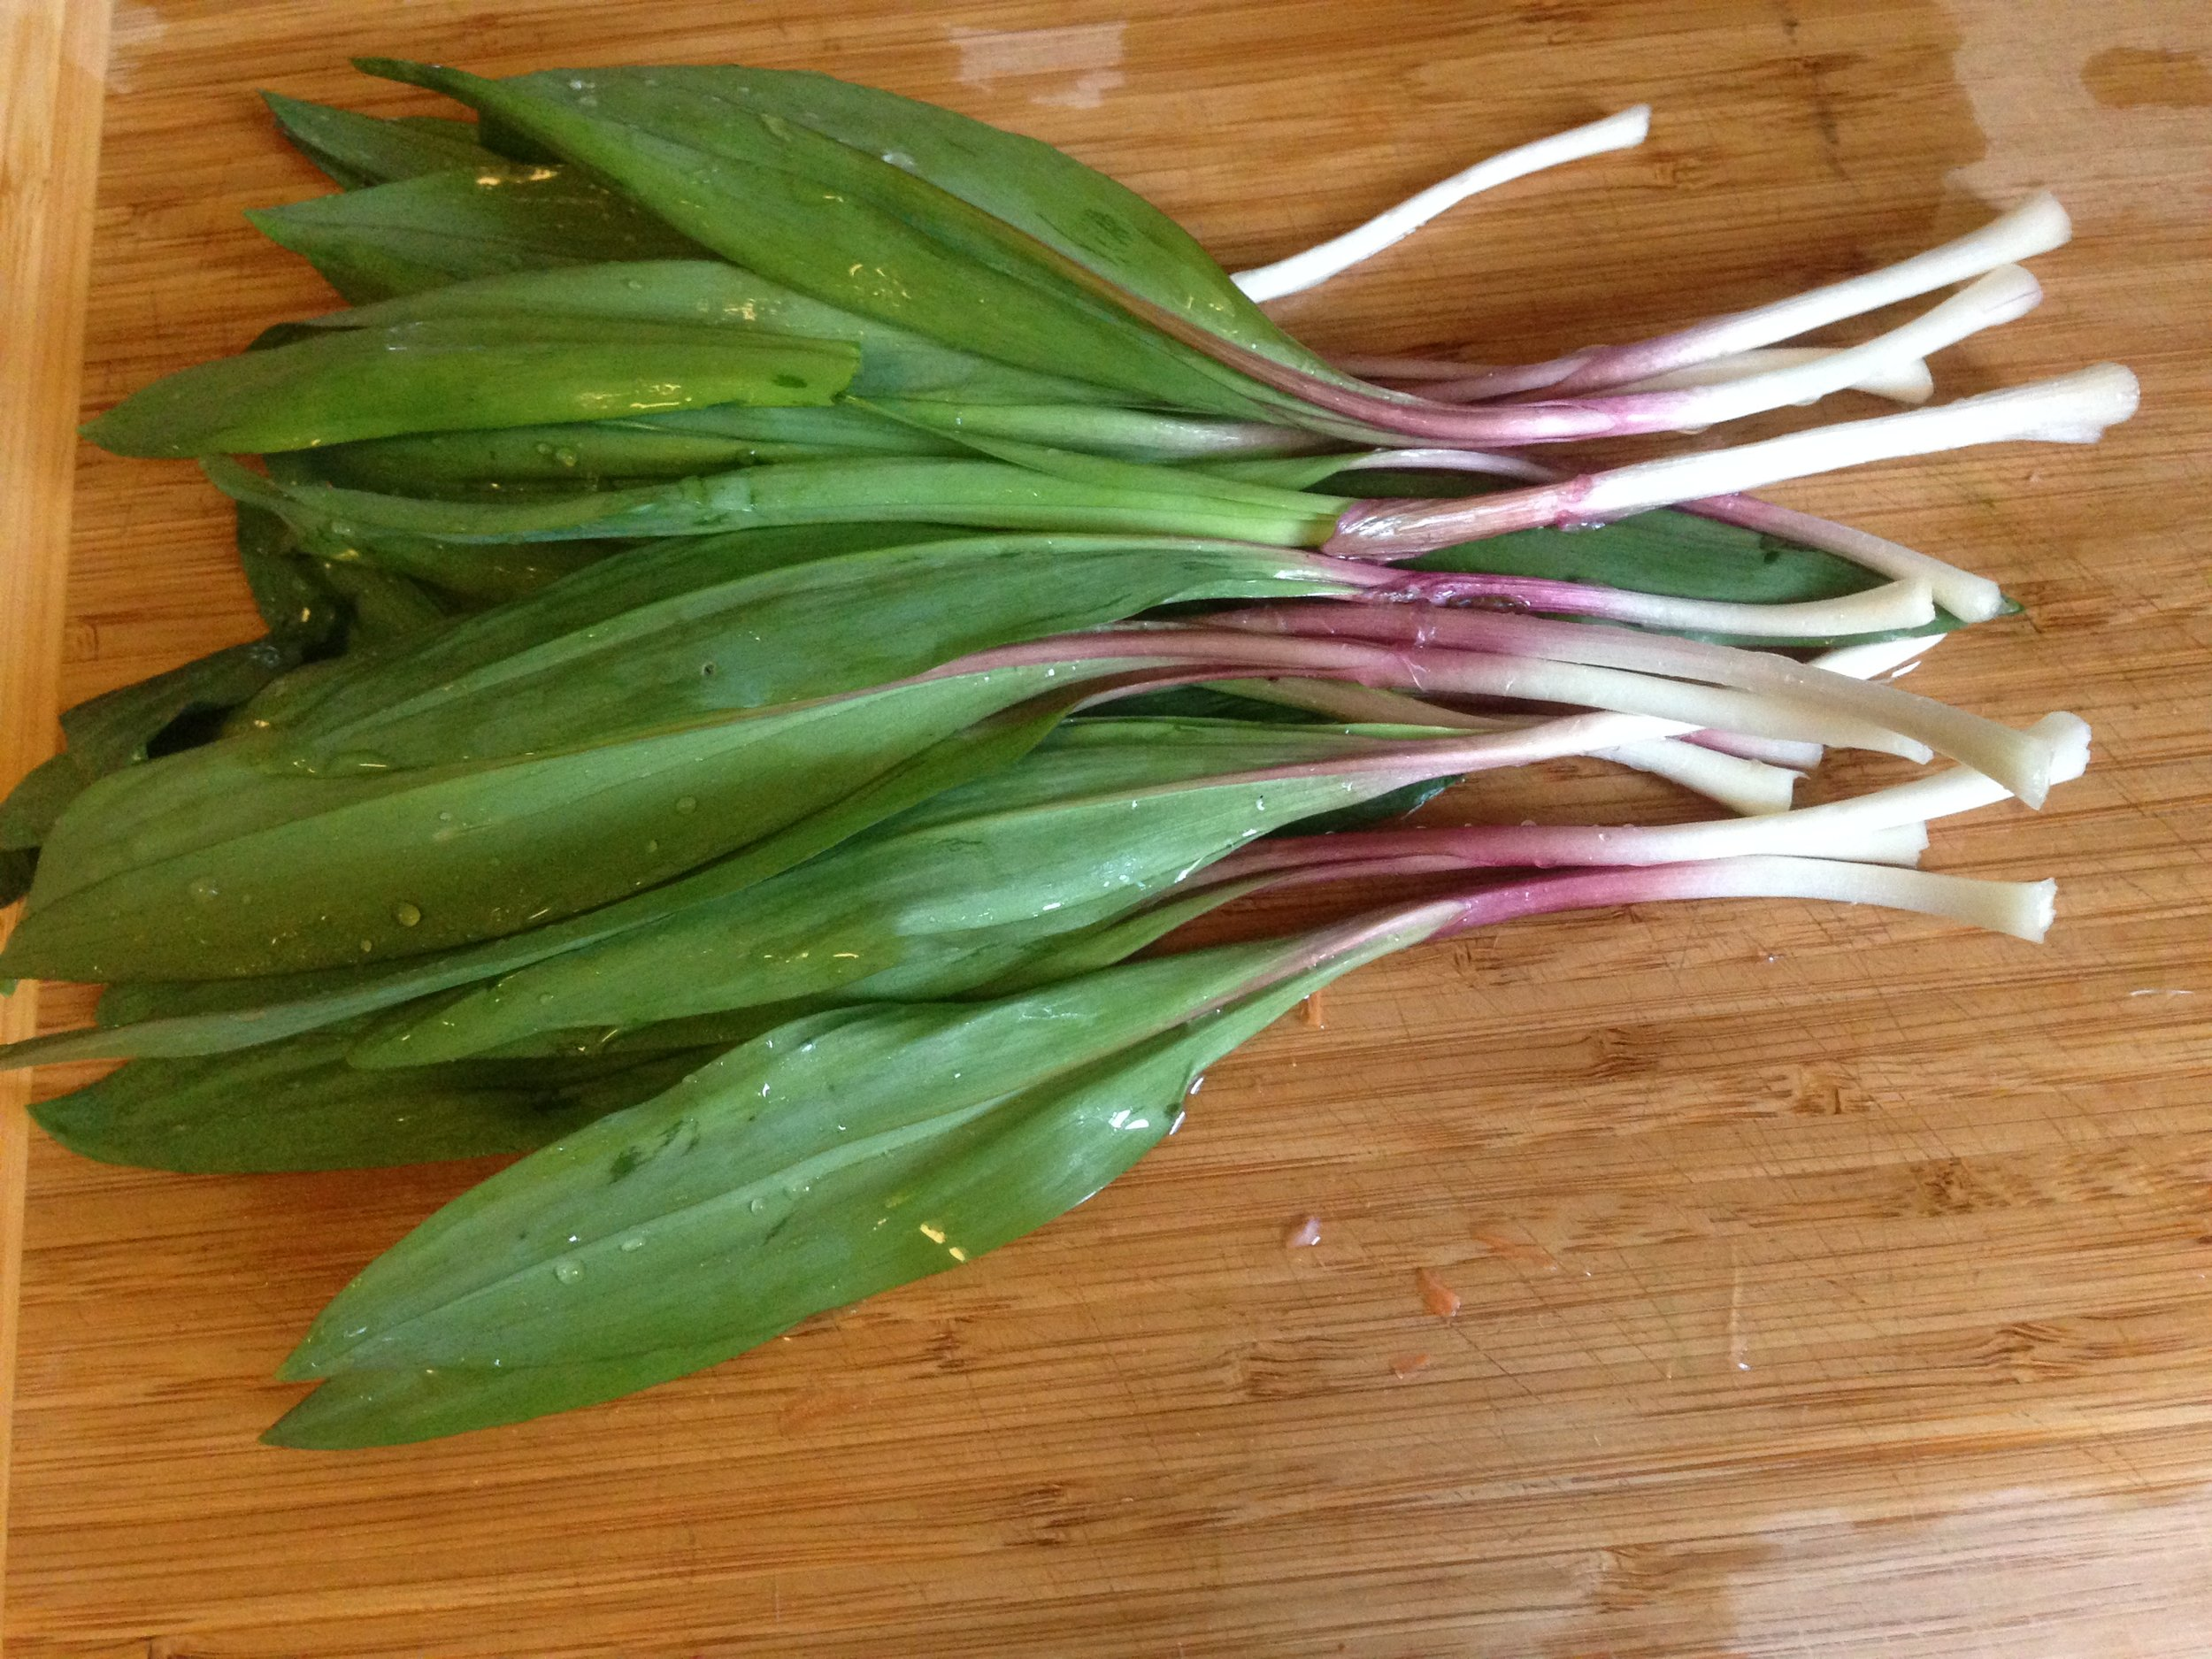 Ramps, cleaned and trimmed